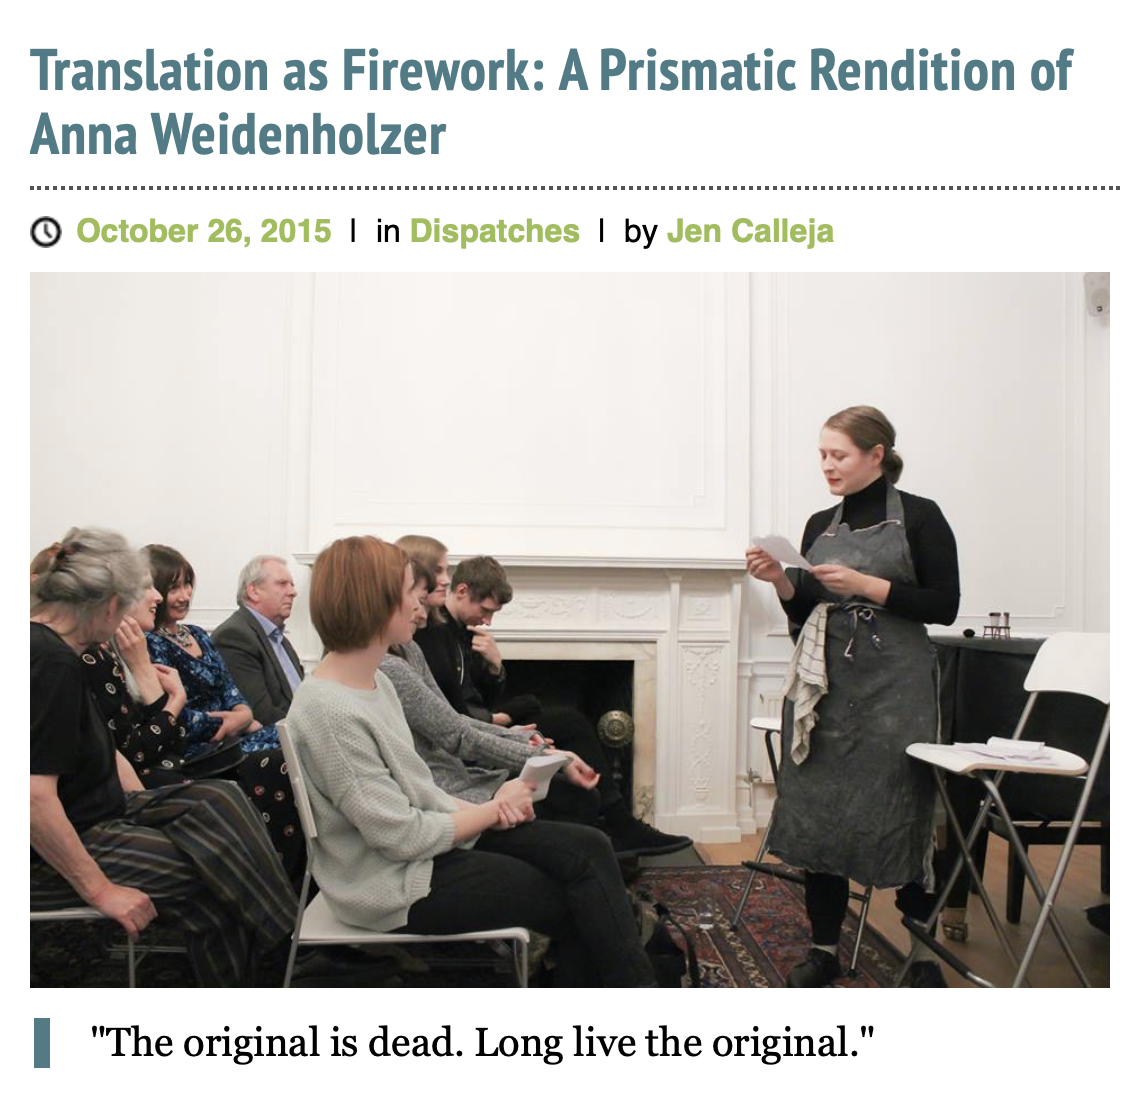 Translation as Firework by Jen Calleja